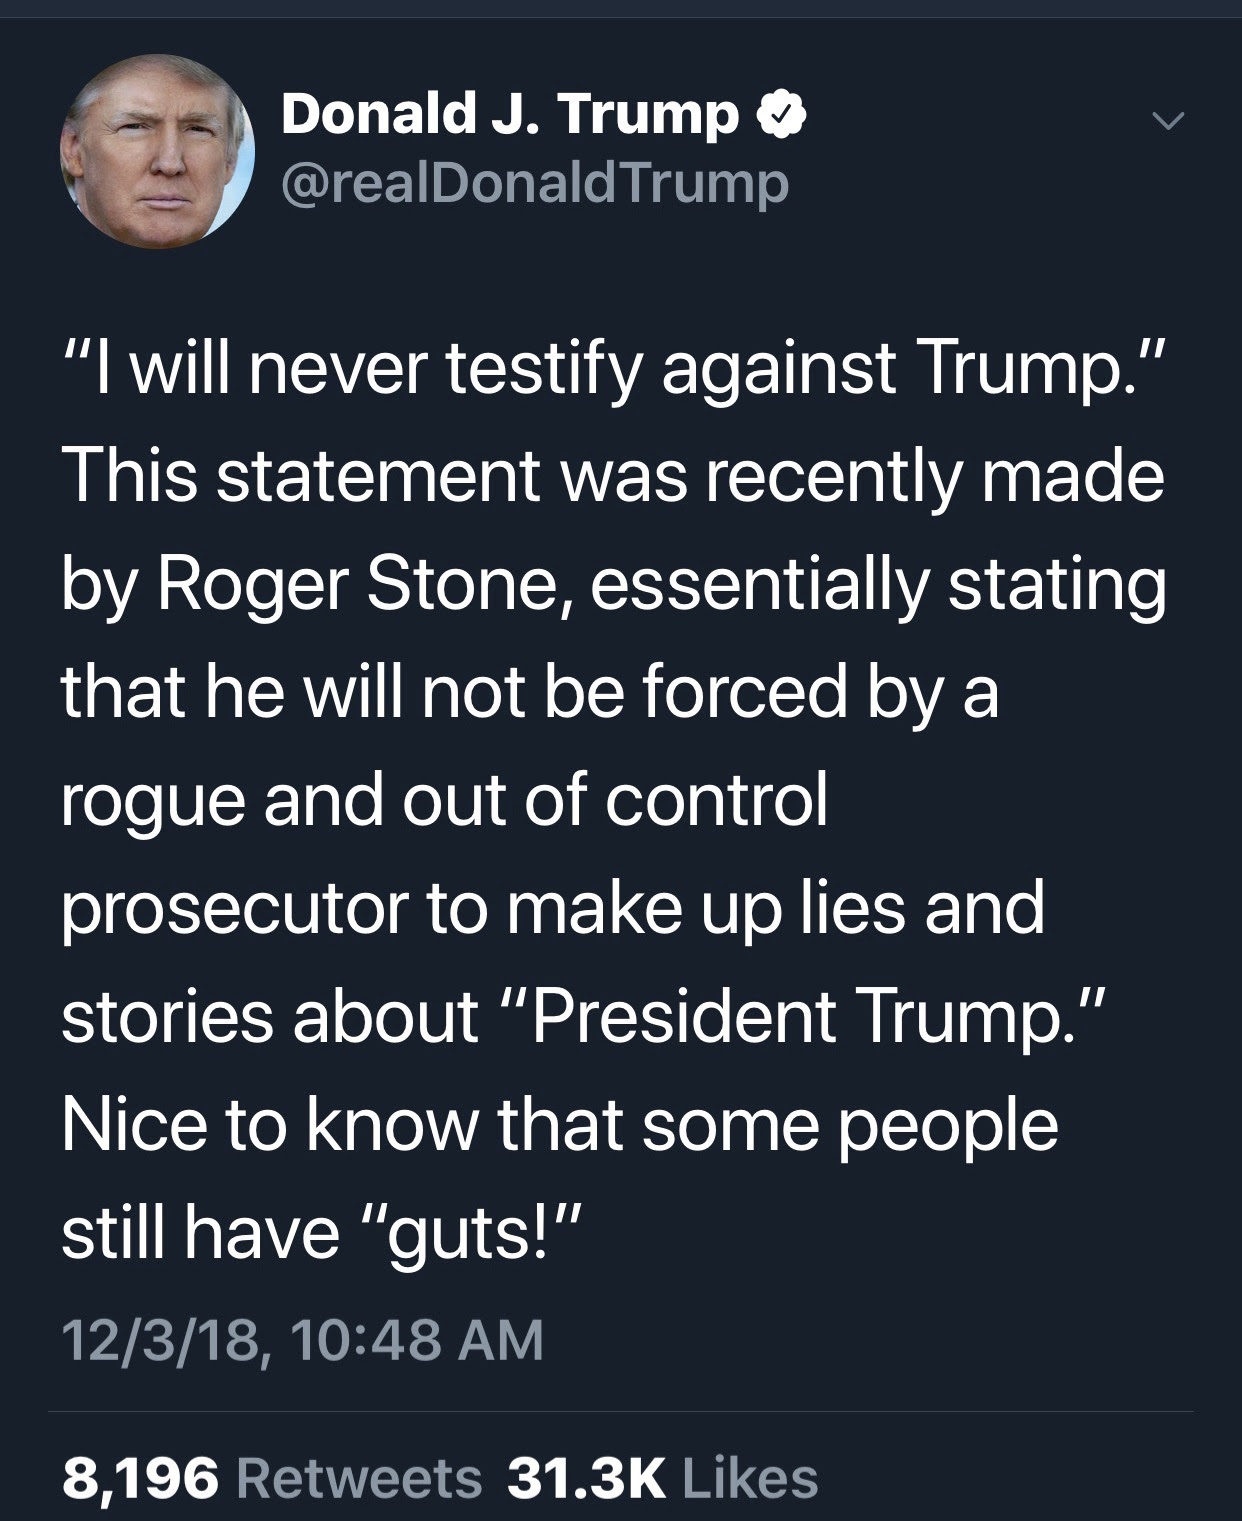 Donald Trump. (Dec. 03, 2018). President Tweet re. Roger Stone's bravery in standing against the Robert Mueller witch hunt. Twitter, The @realDonaldTrump.